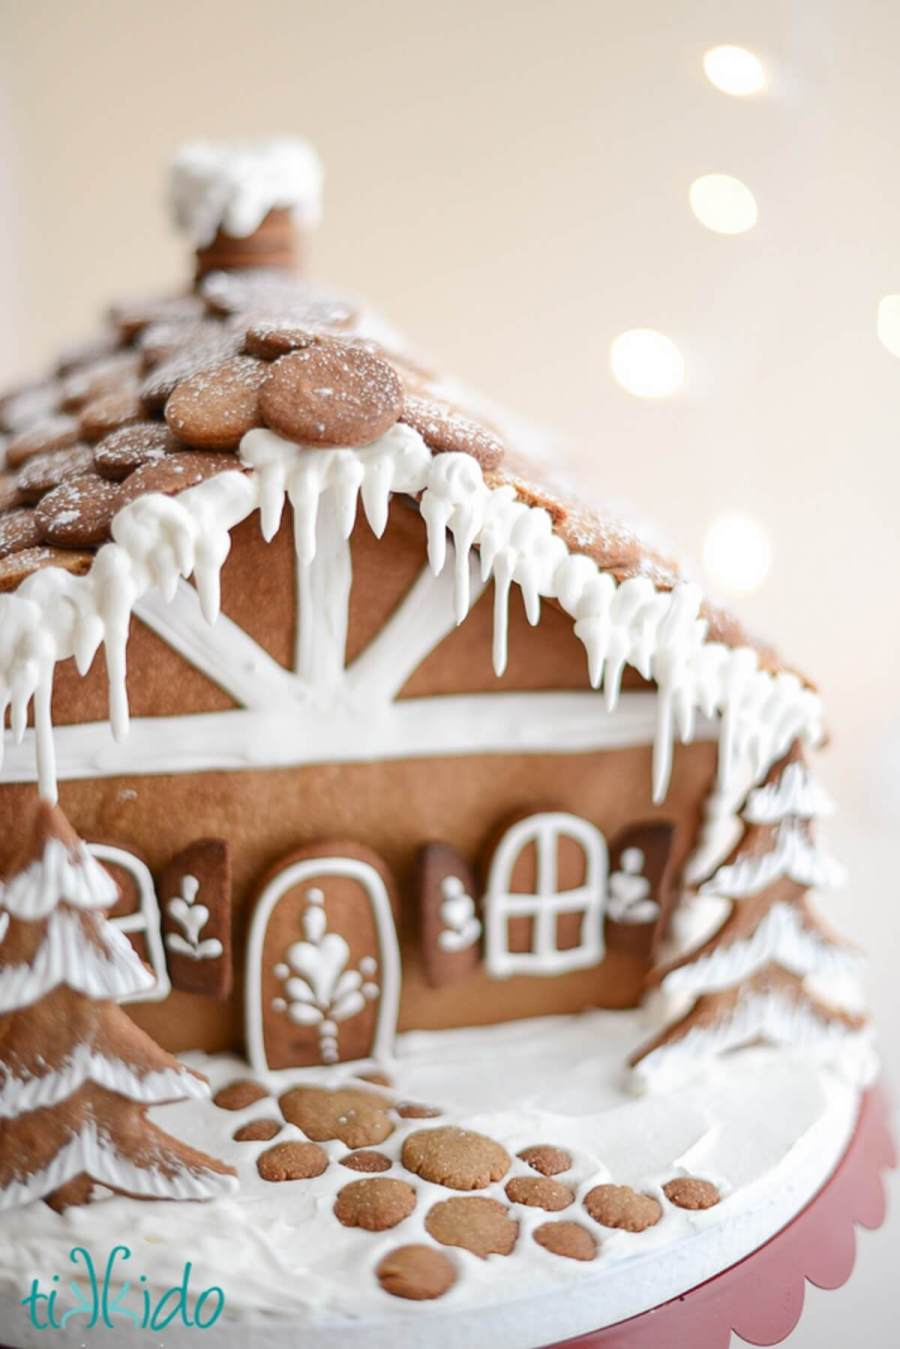 Cute Gingerbread House Ideas for Christmas - Holidays | A Matter of Style